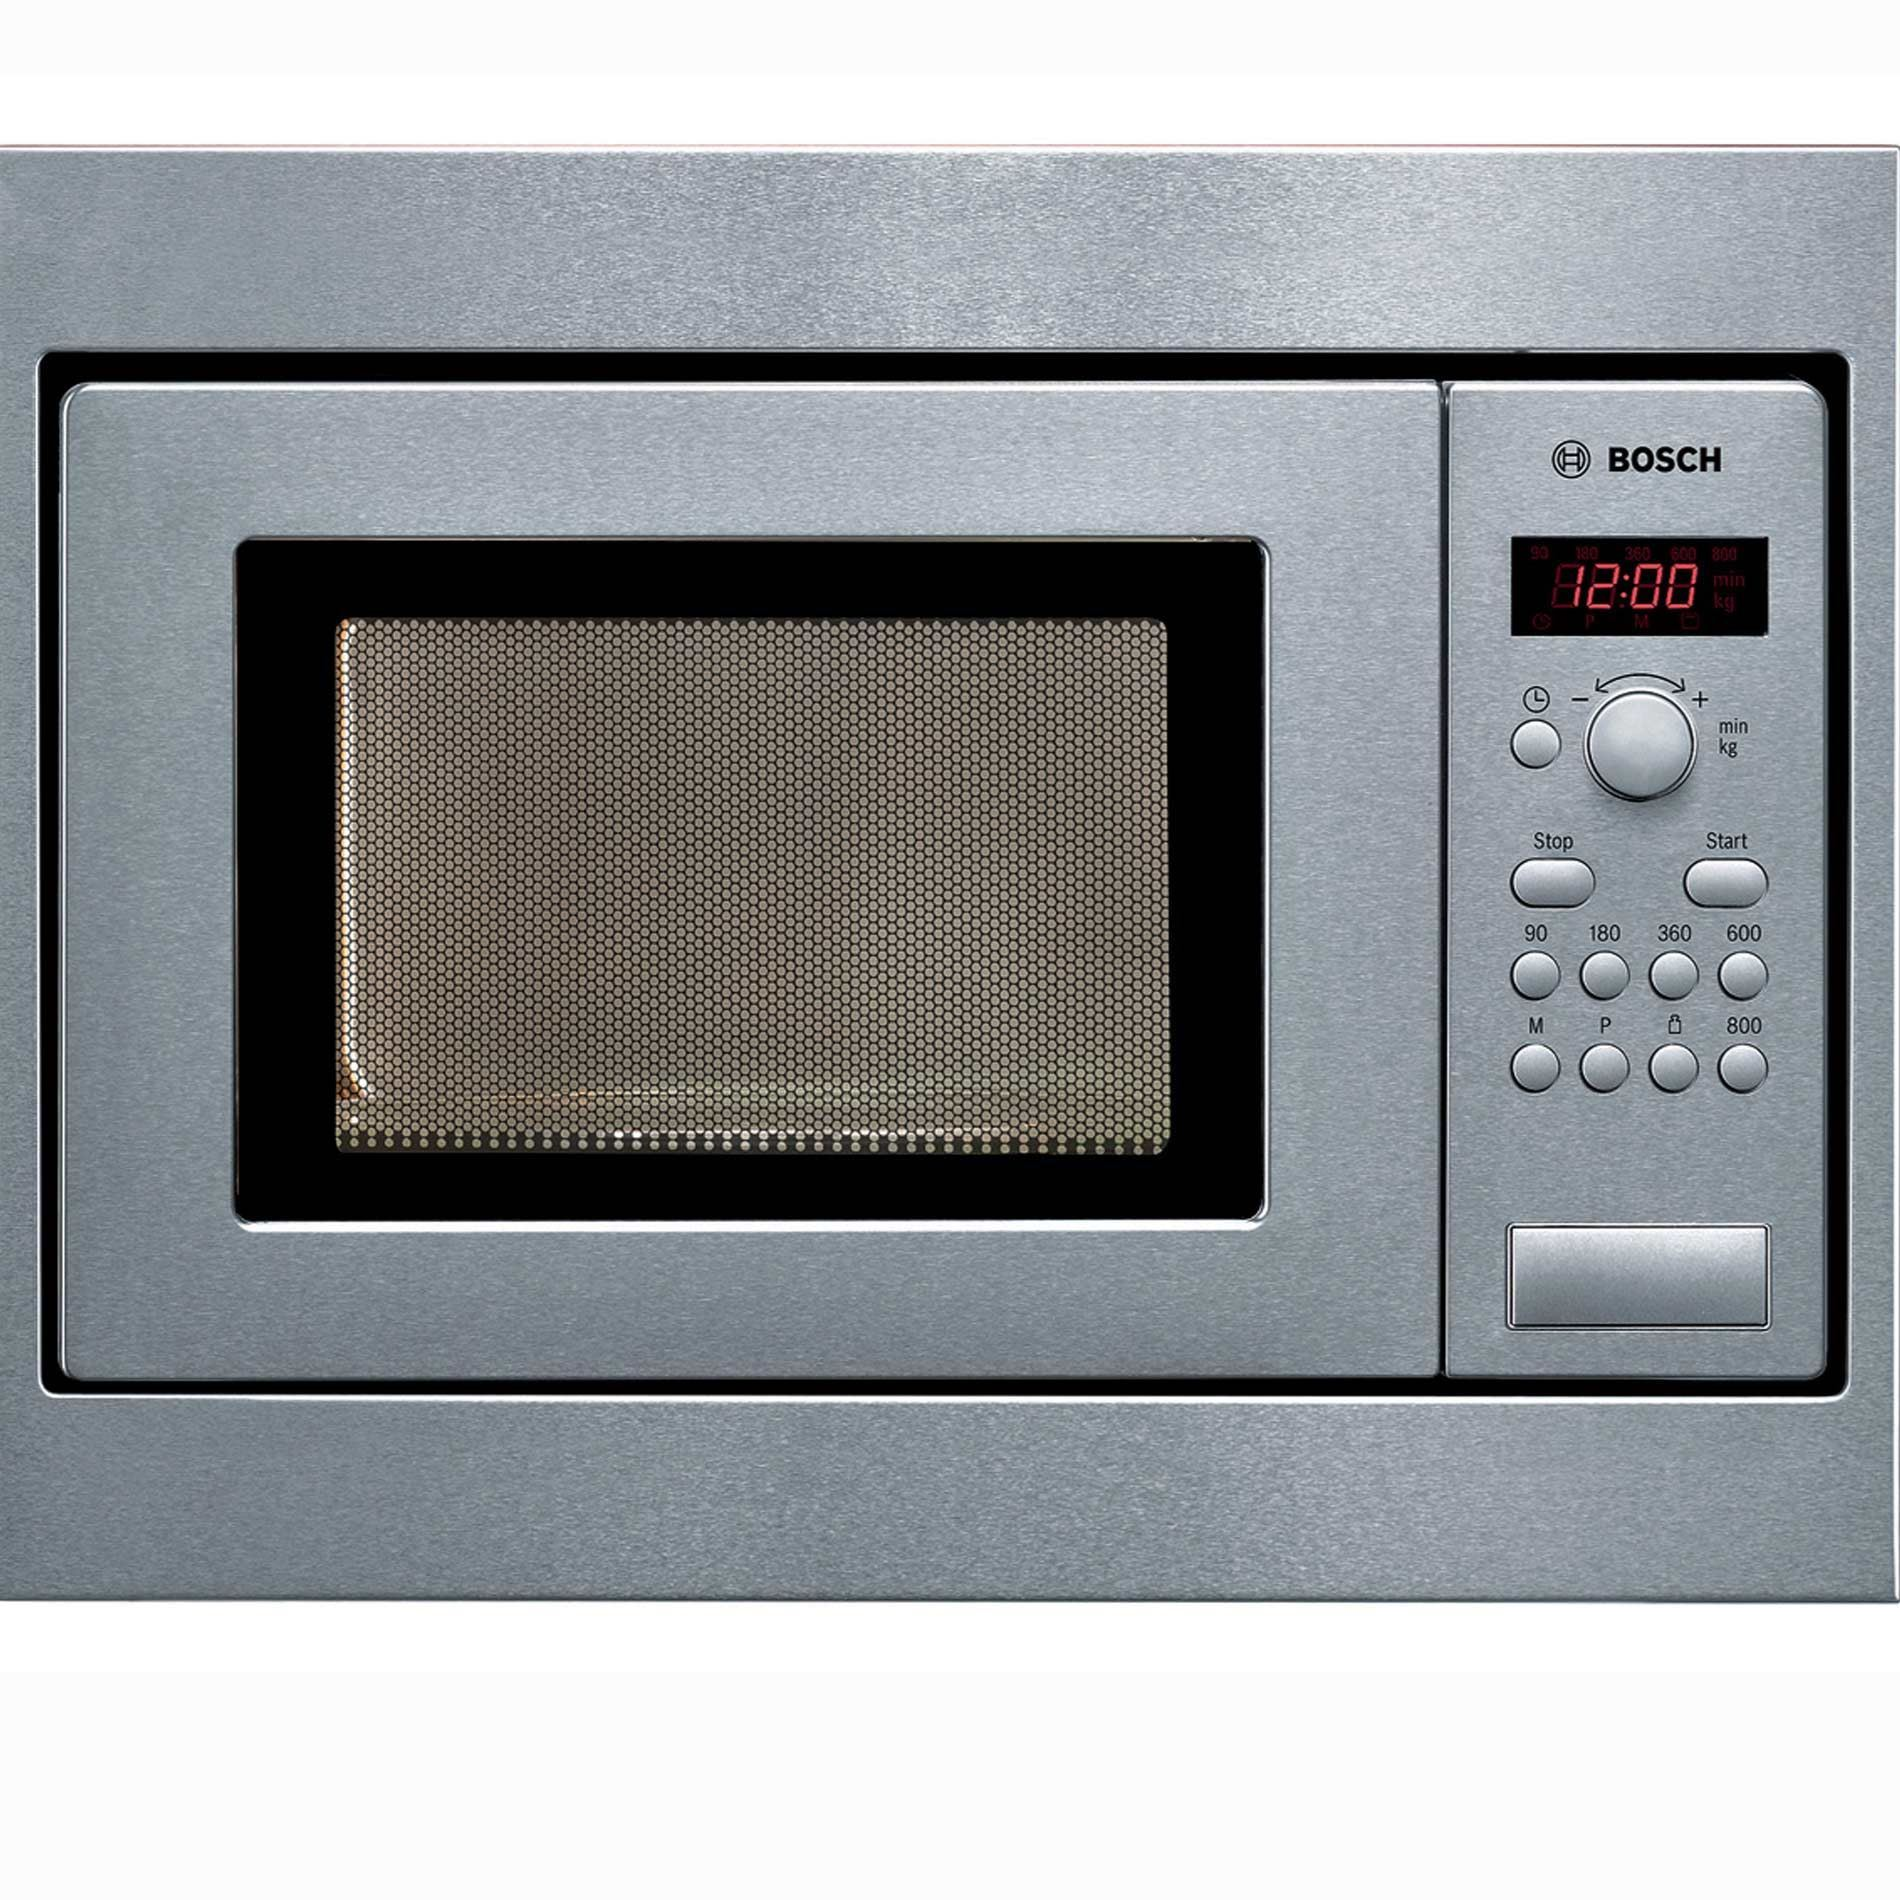 Bosch Hmt75m551b Built In Microwave Oven Appliance Source